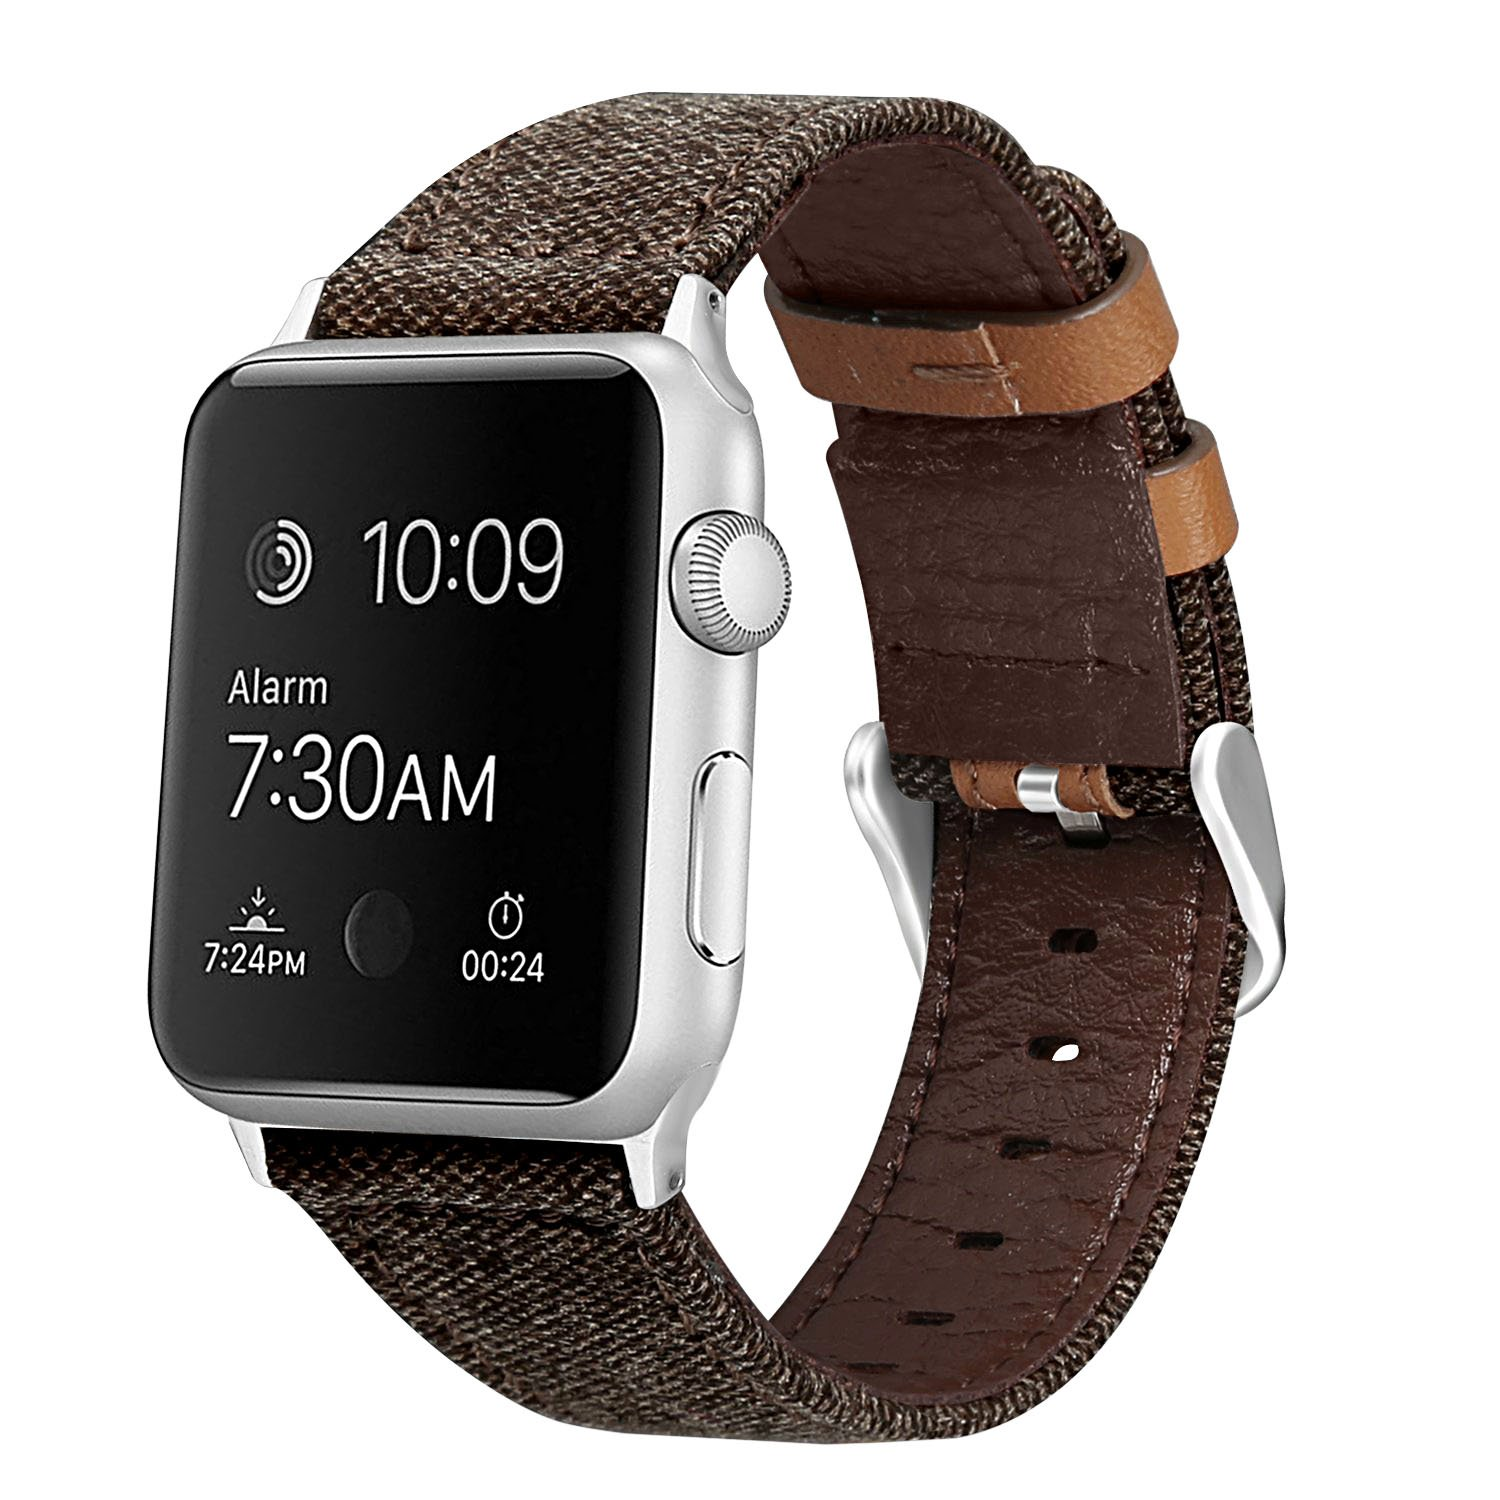 penen Compatible Apple Watch Band 38mm 42mm Leather iWatch Strap Replacement Band Leather Watch Sport Loop Band Replacement with Stainless Metal Buckle for Apple Watch Nike+ Series 3,2,1 by penen (Image #2)